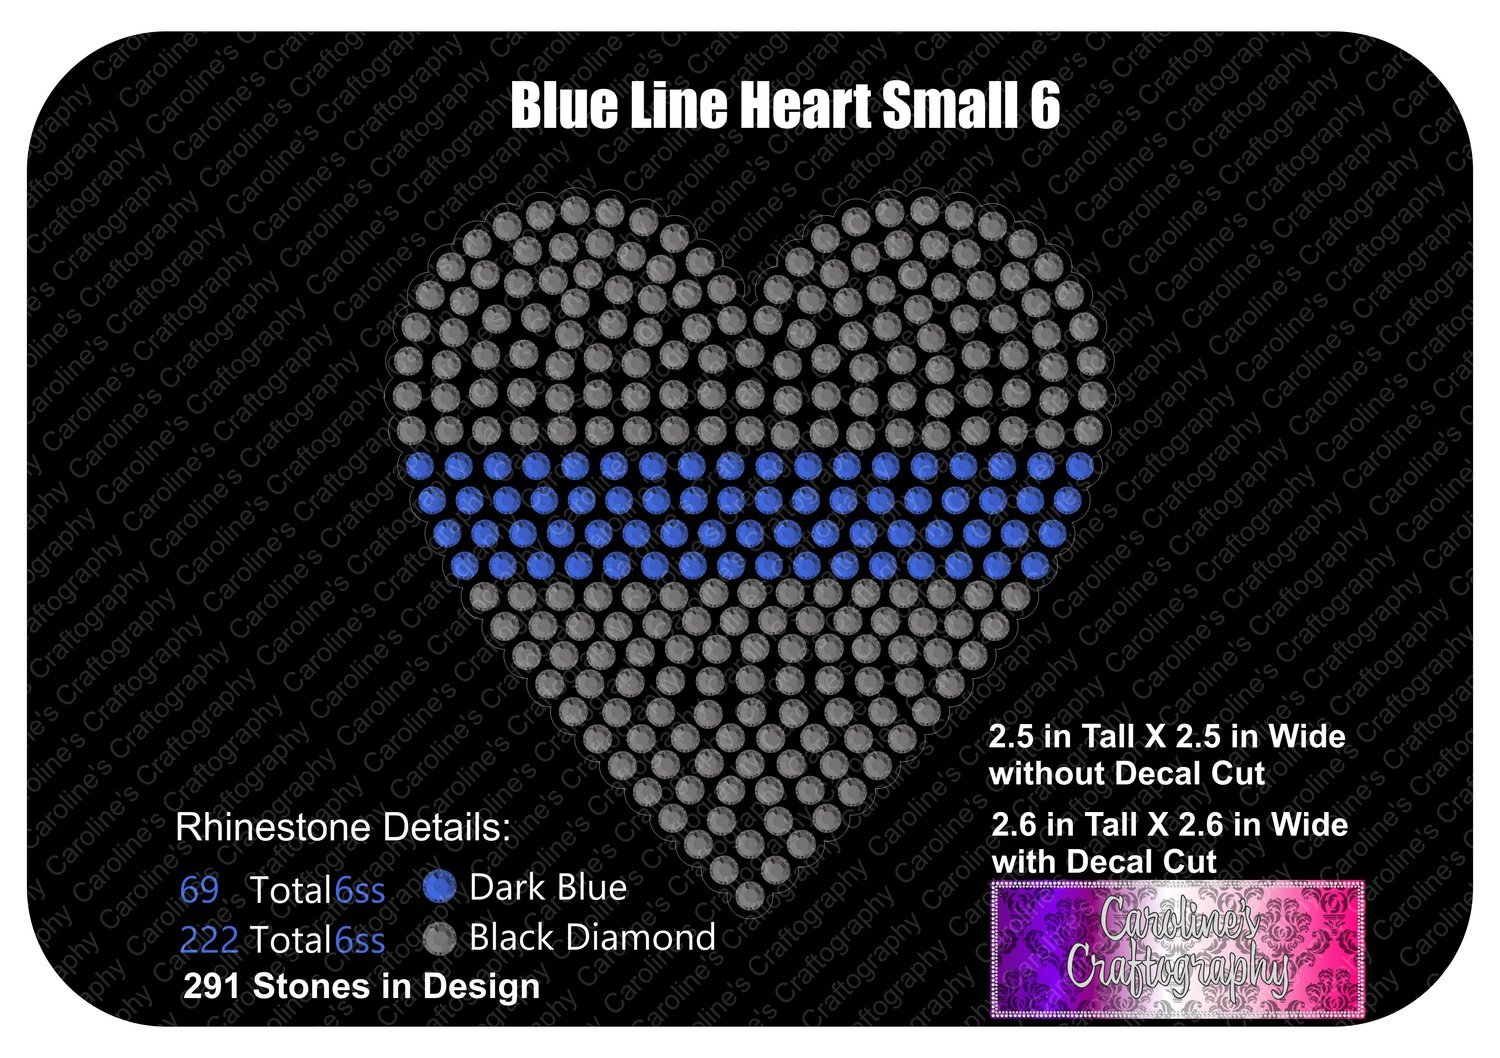 Blue Line Heart Stone Decal Small 6